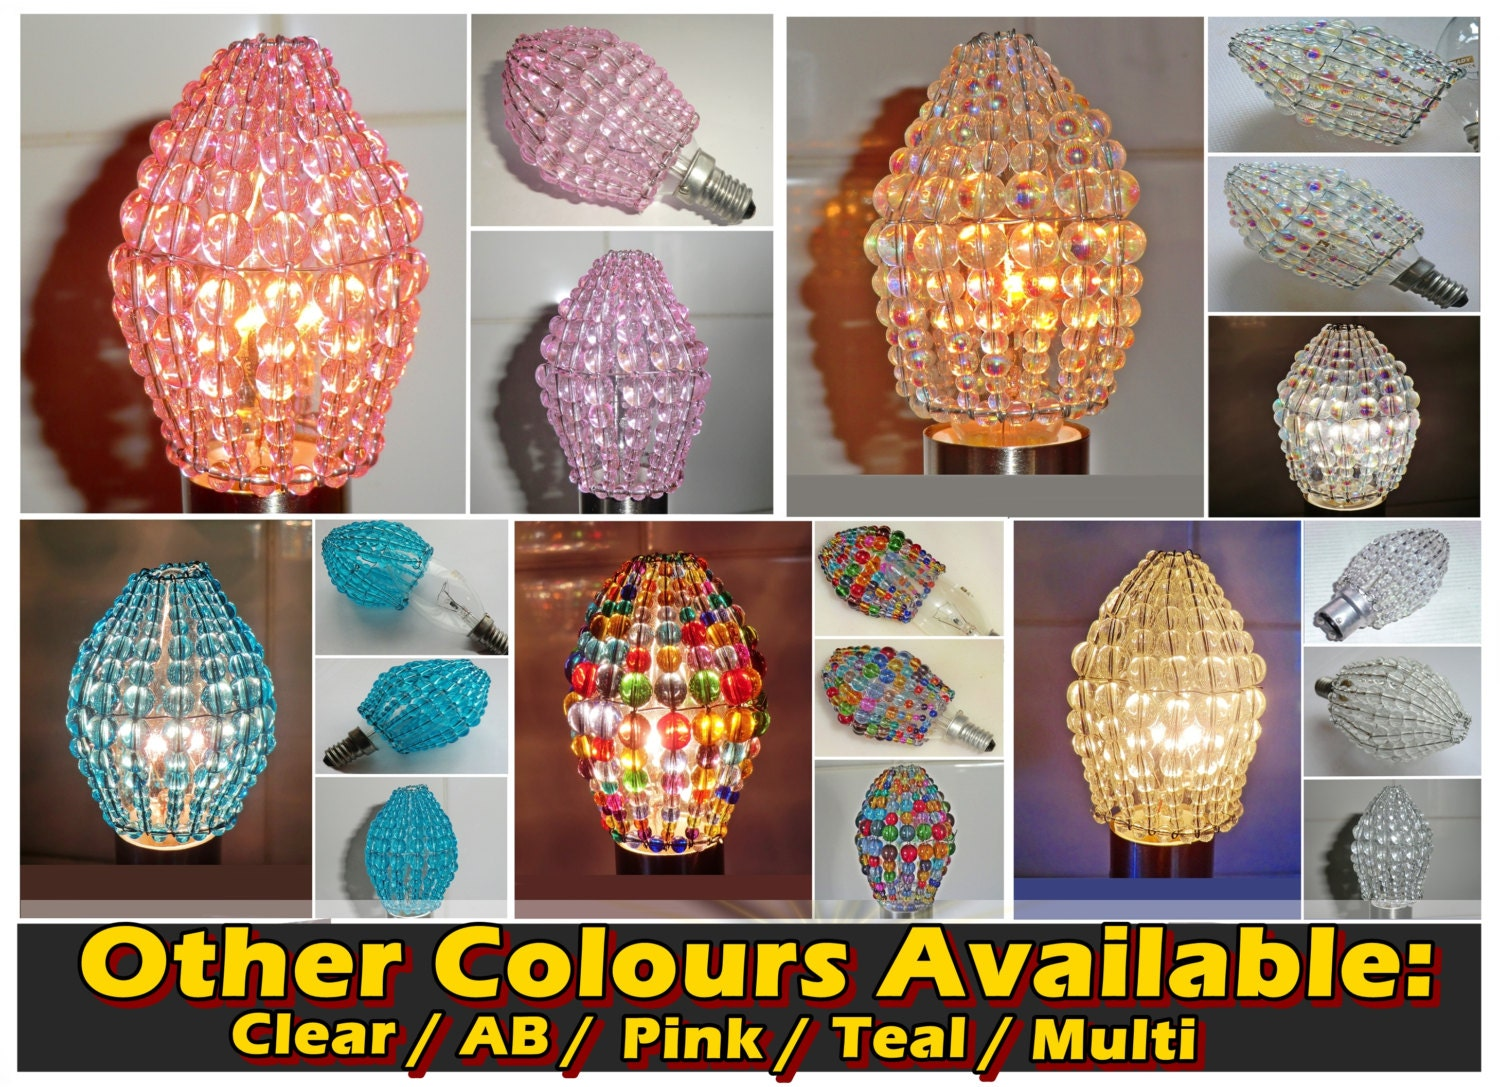 Crystal chandelier inspired glass lightbulb candle bulb cover pink gallery photo gallery photo gallery photo gallery photo gallery photo aloadofball Images